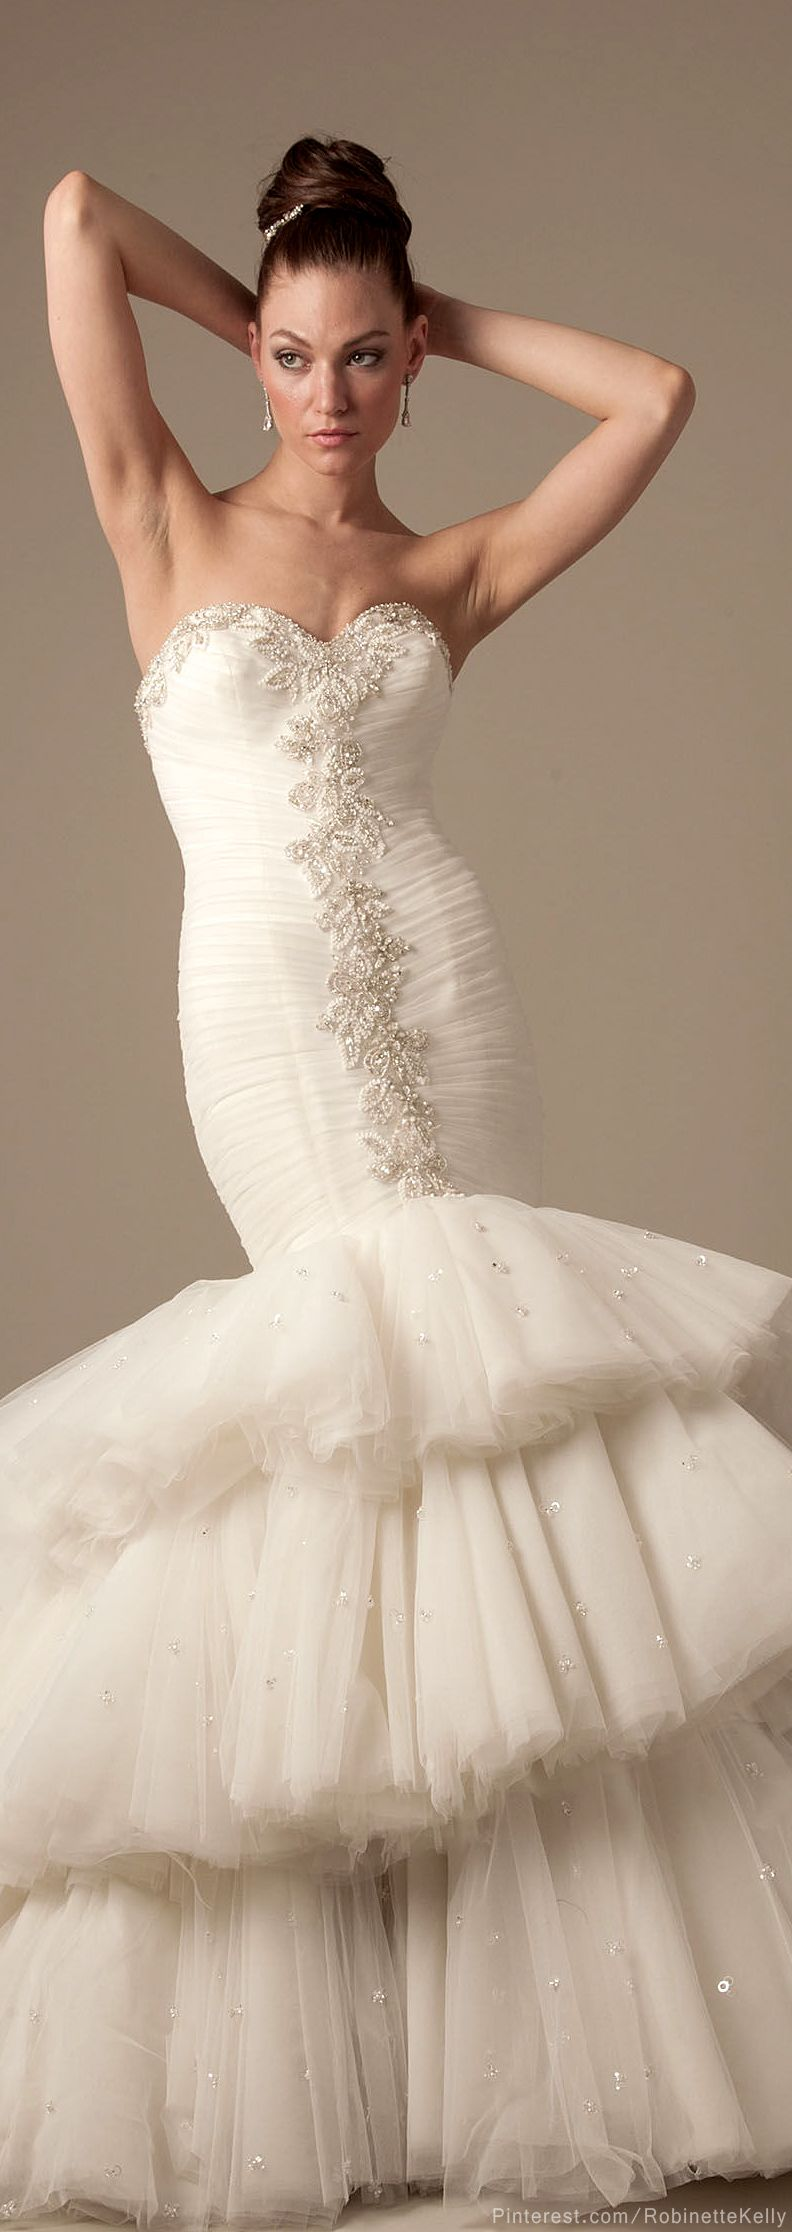 Dennis Basso for Kleinfeld 2013 collection Bridal